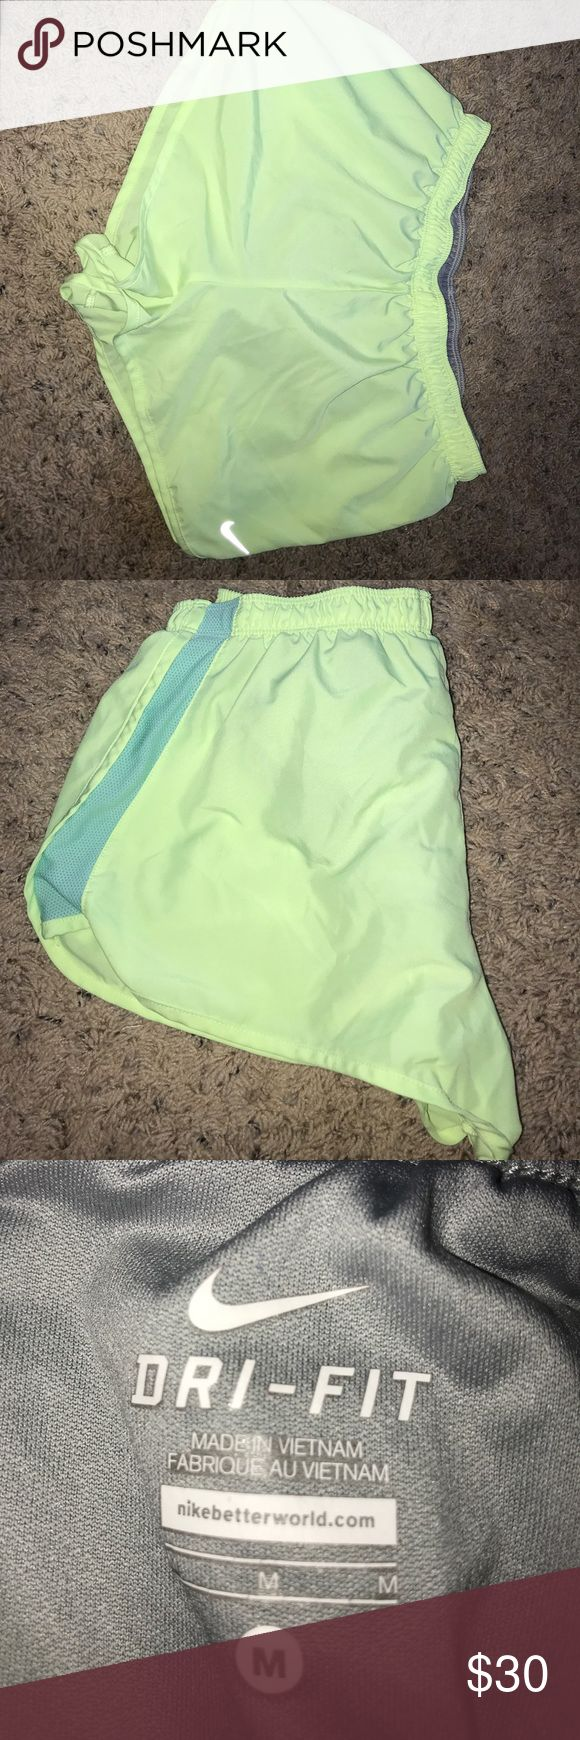 Nike dri-fit shorts lime green shorts w/ a blue mesh side. Super cute & great for running!! great condition slightly worn. Nike Shorts